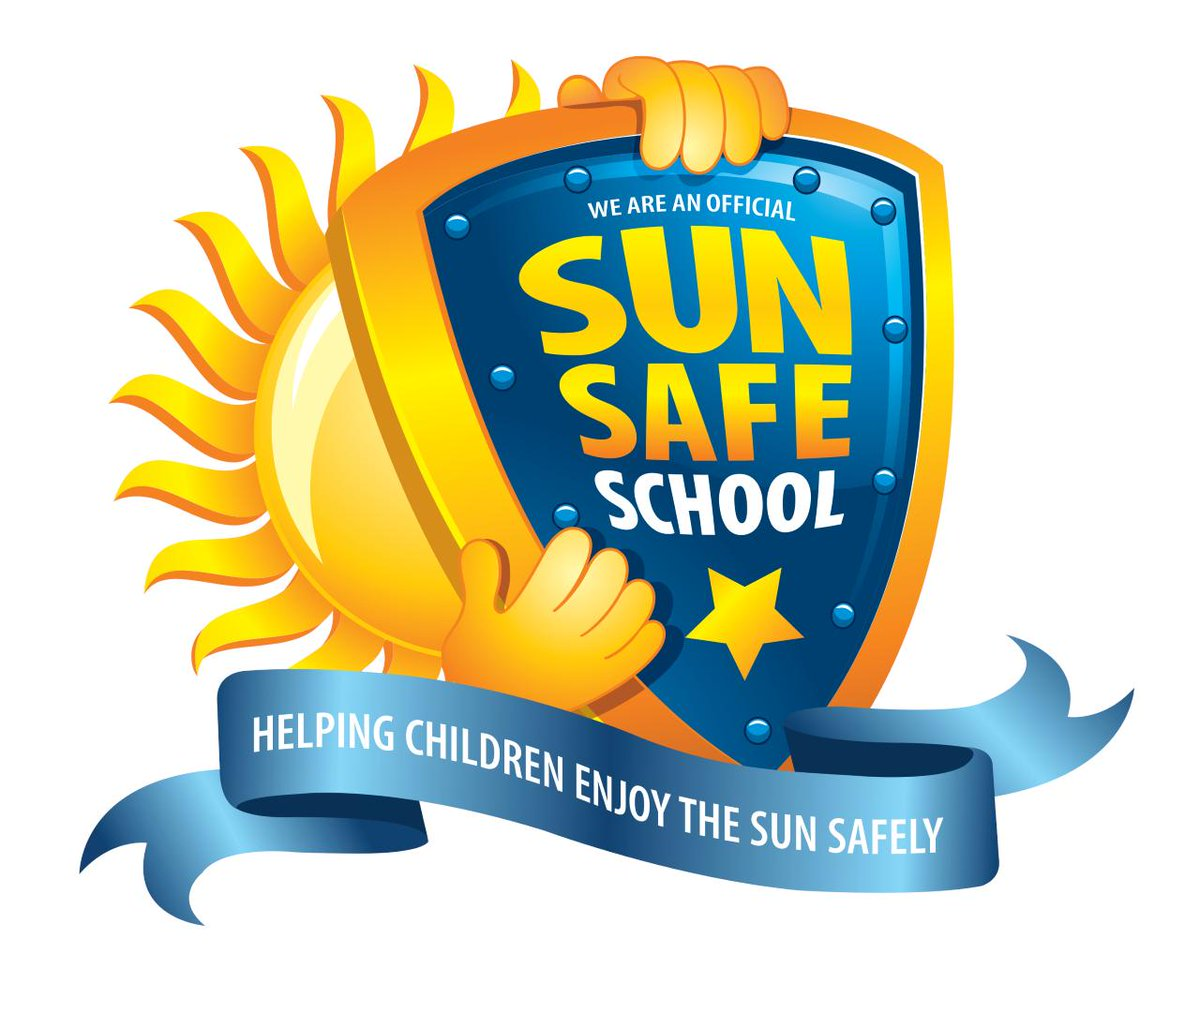 test Twitter Media - Through the hard work we have done this week on Sun Safety, we have earned the right to call ourselves a 'Sun Safe School.' We can now use this logo on our website and stationery!  @SunSafeSchools @Skcin https://t.co/SuXvBg0lYl